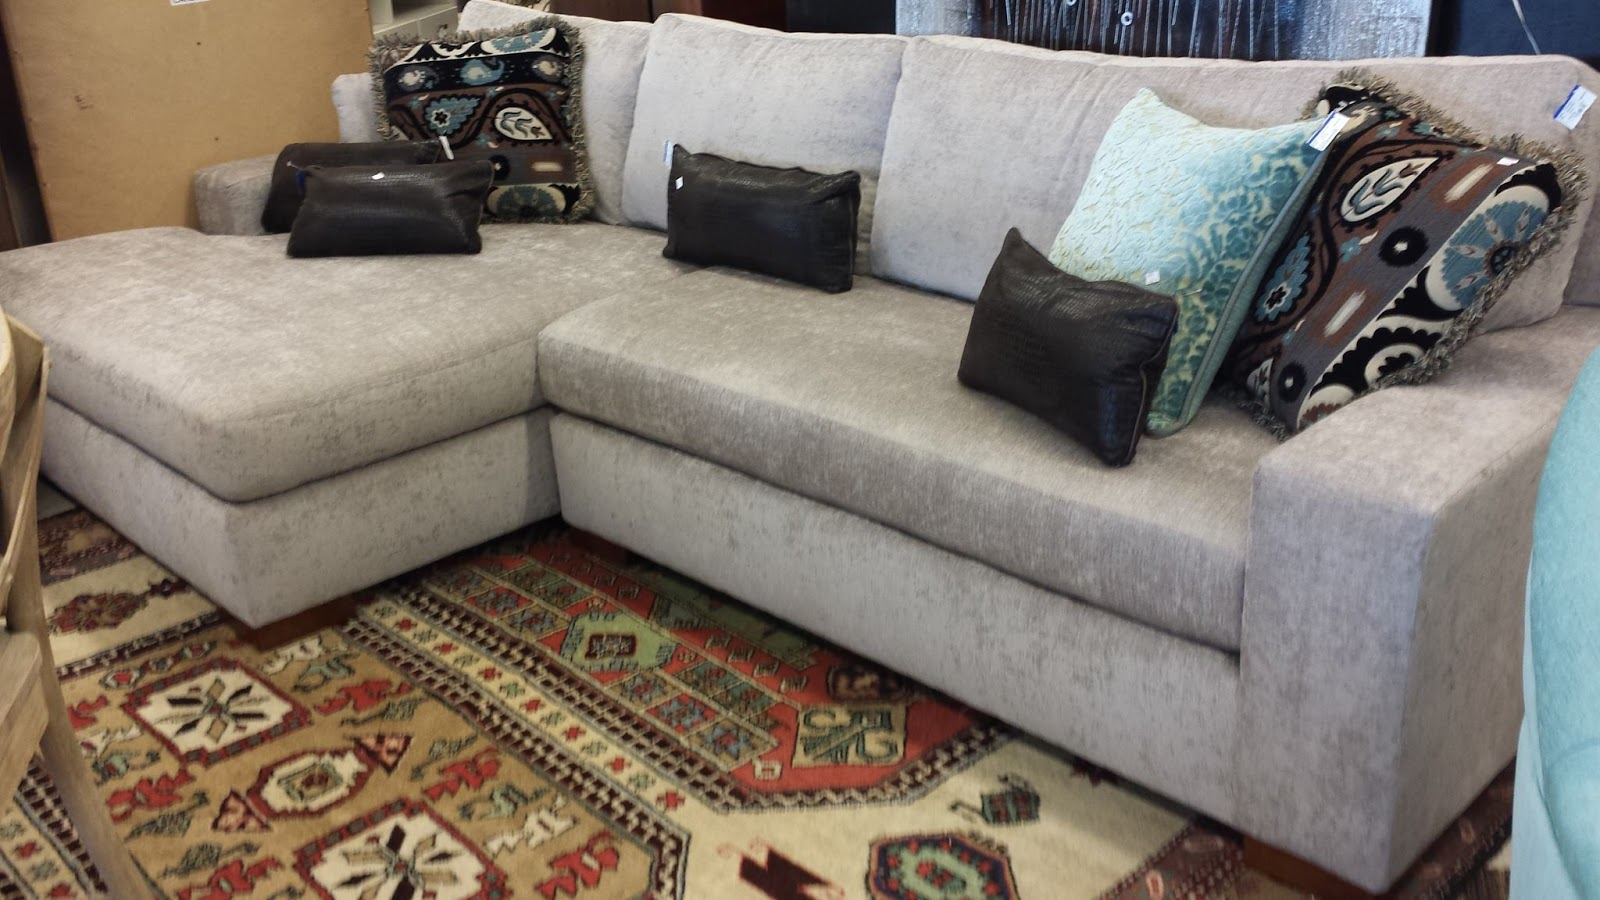 Sofas In Atlanta Rooms To Go Sofa Sleeper Sectional Furniture Stores 4 Fantastic Locations